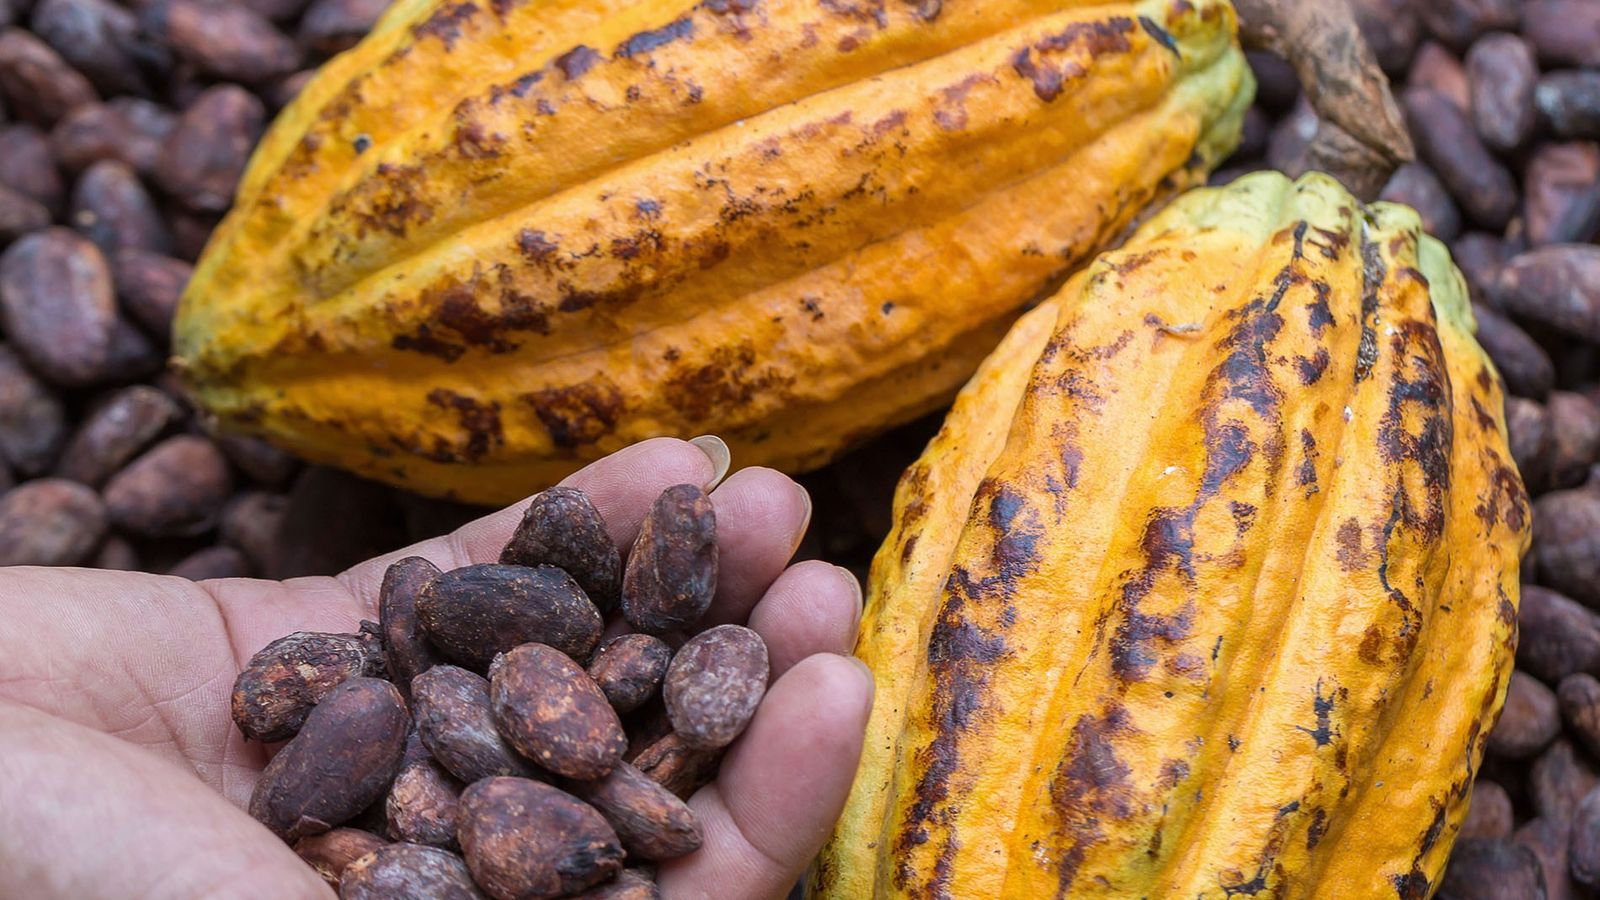 Cacao pod and dried cocoa beans.